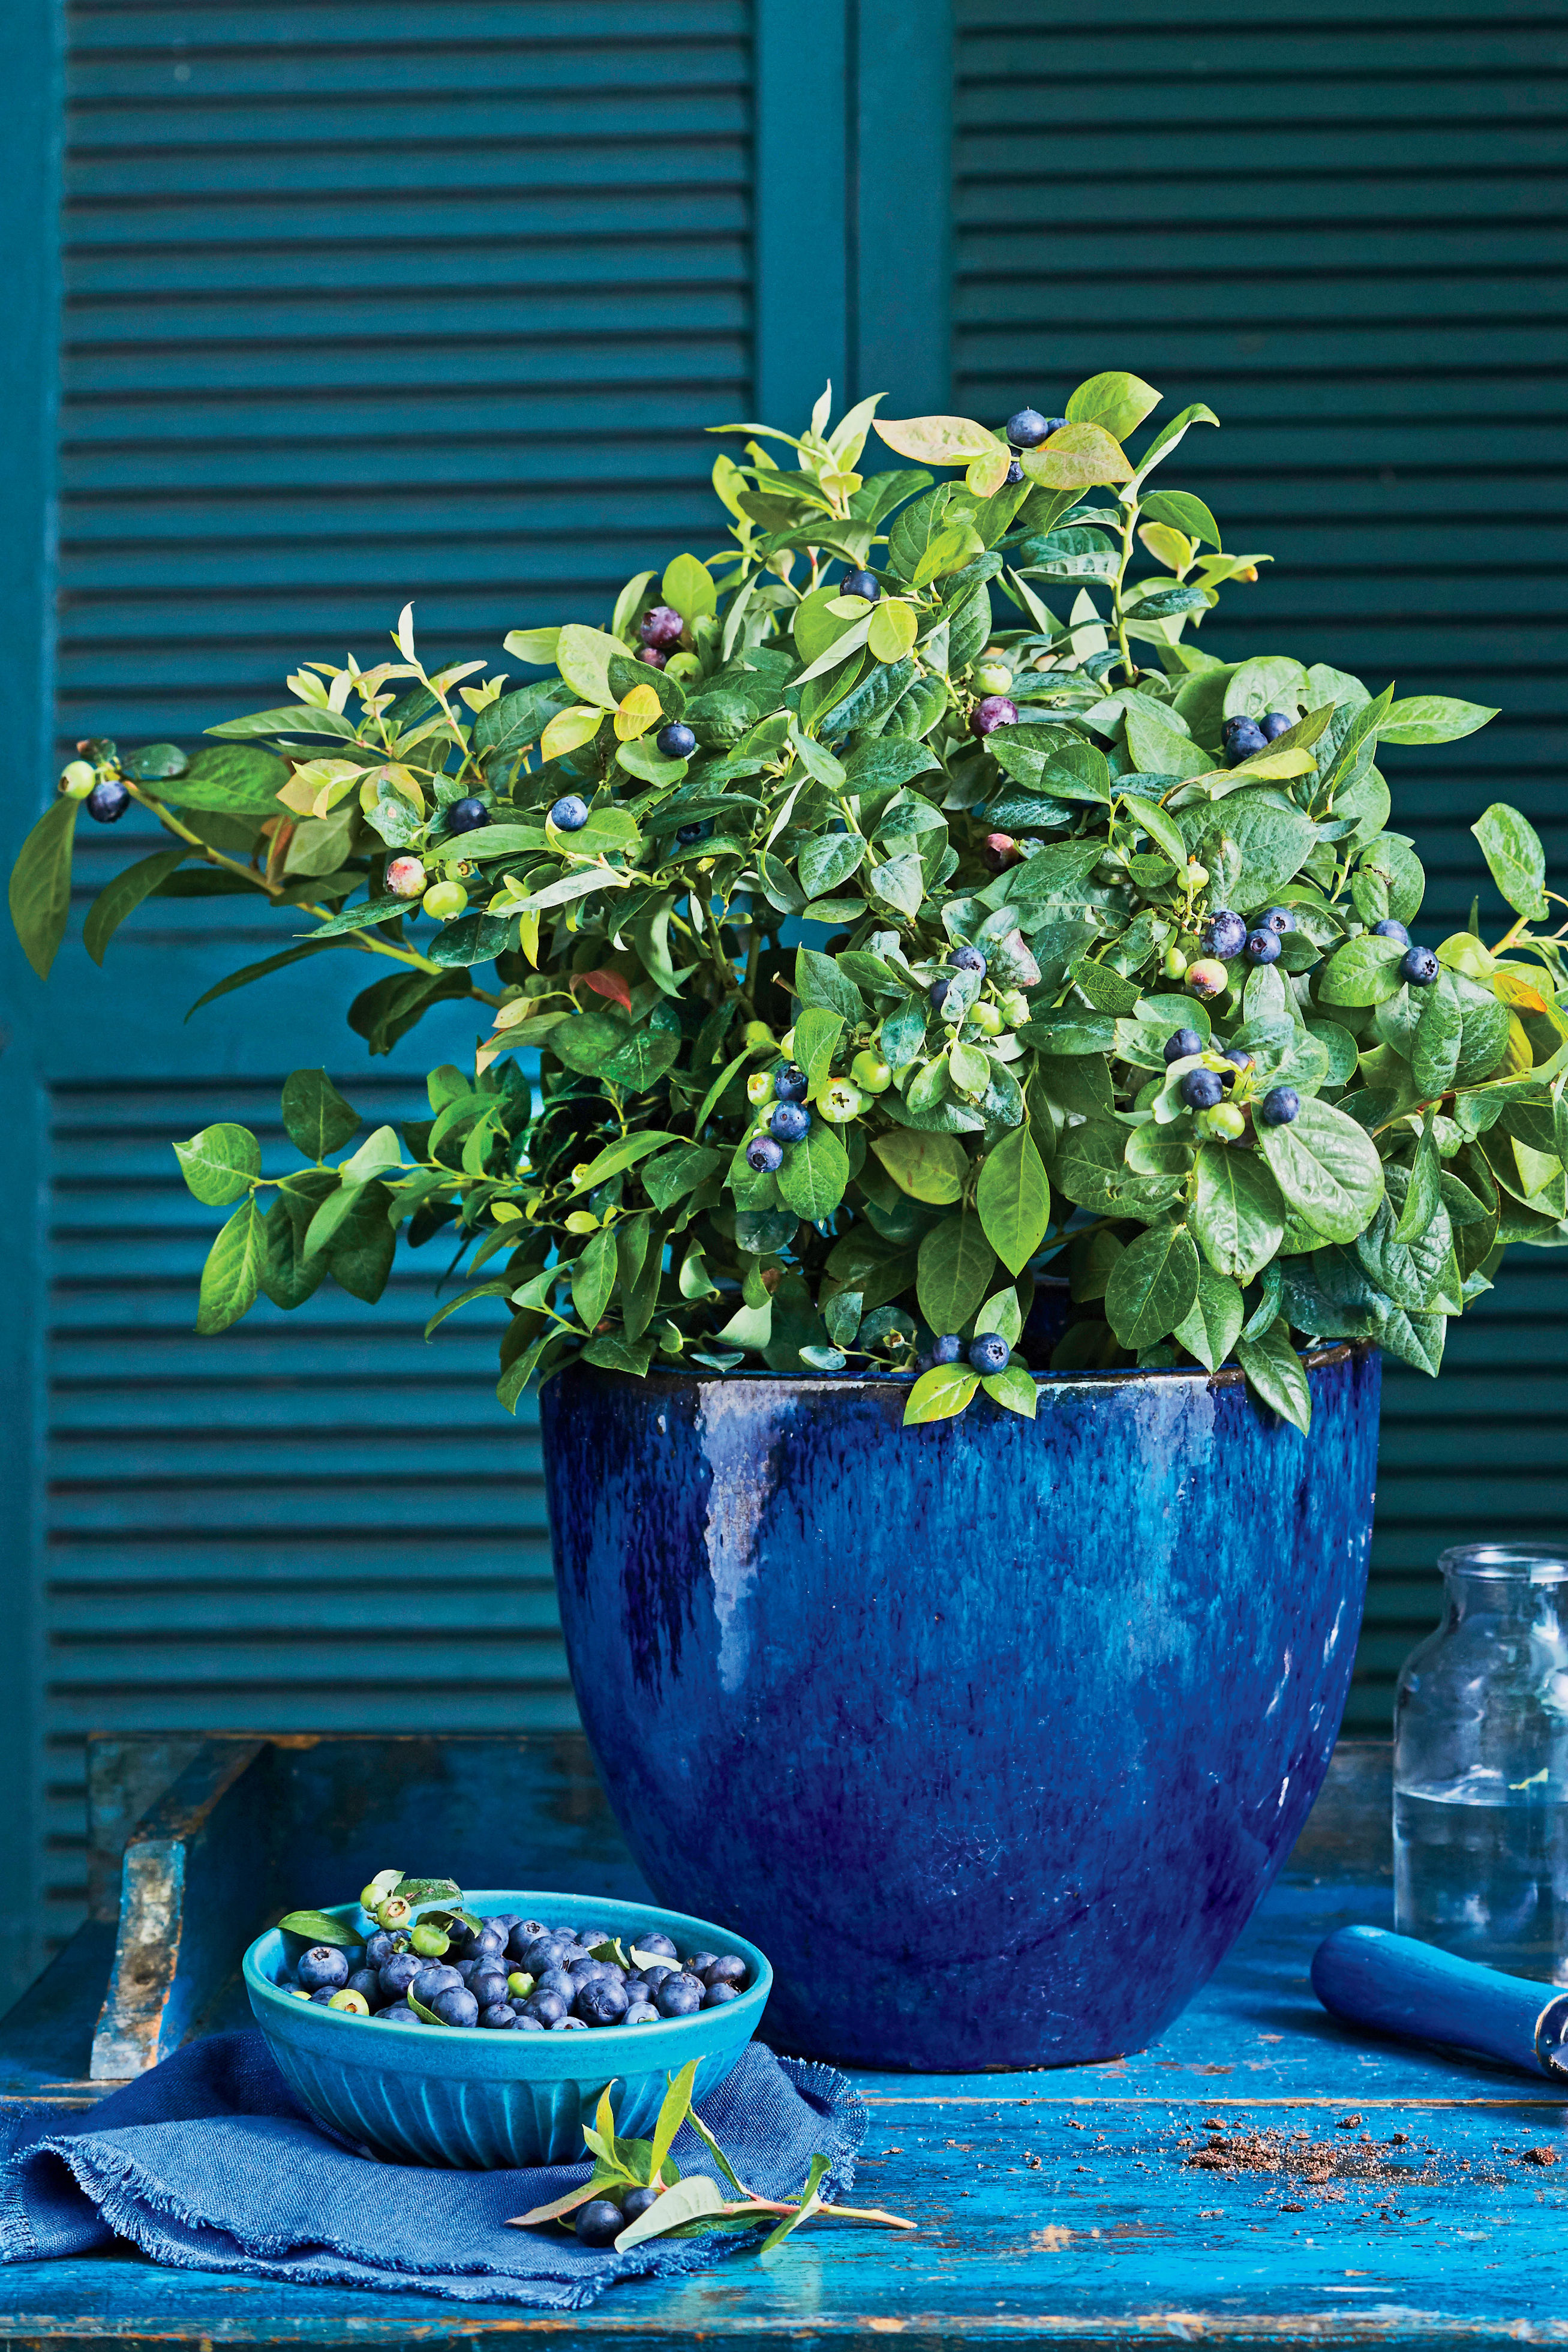 Did You Know You Could Grow Blueberries in Containers?